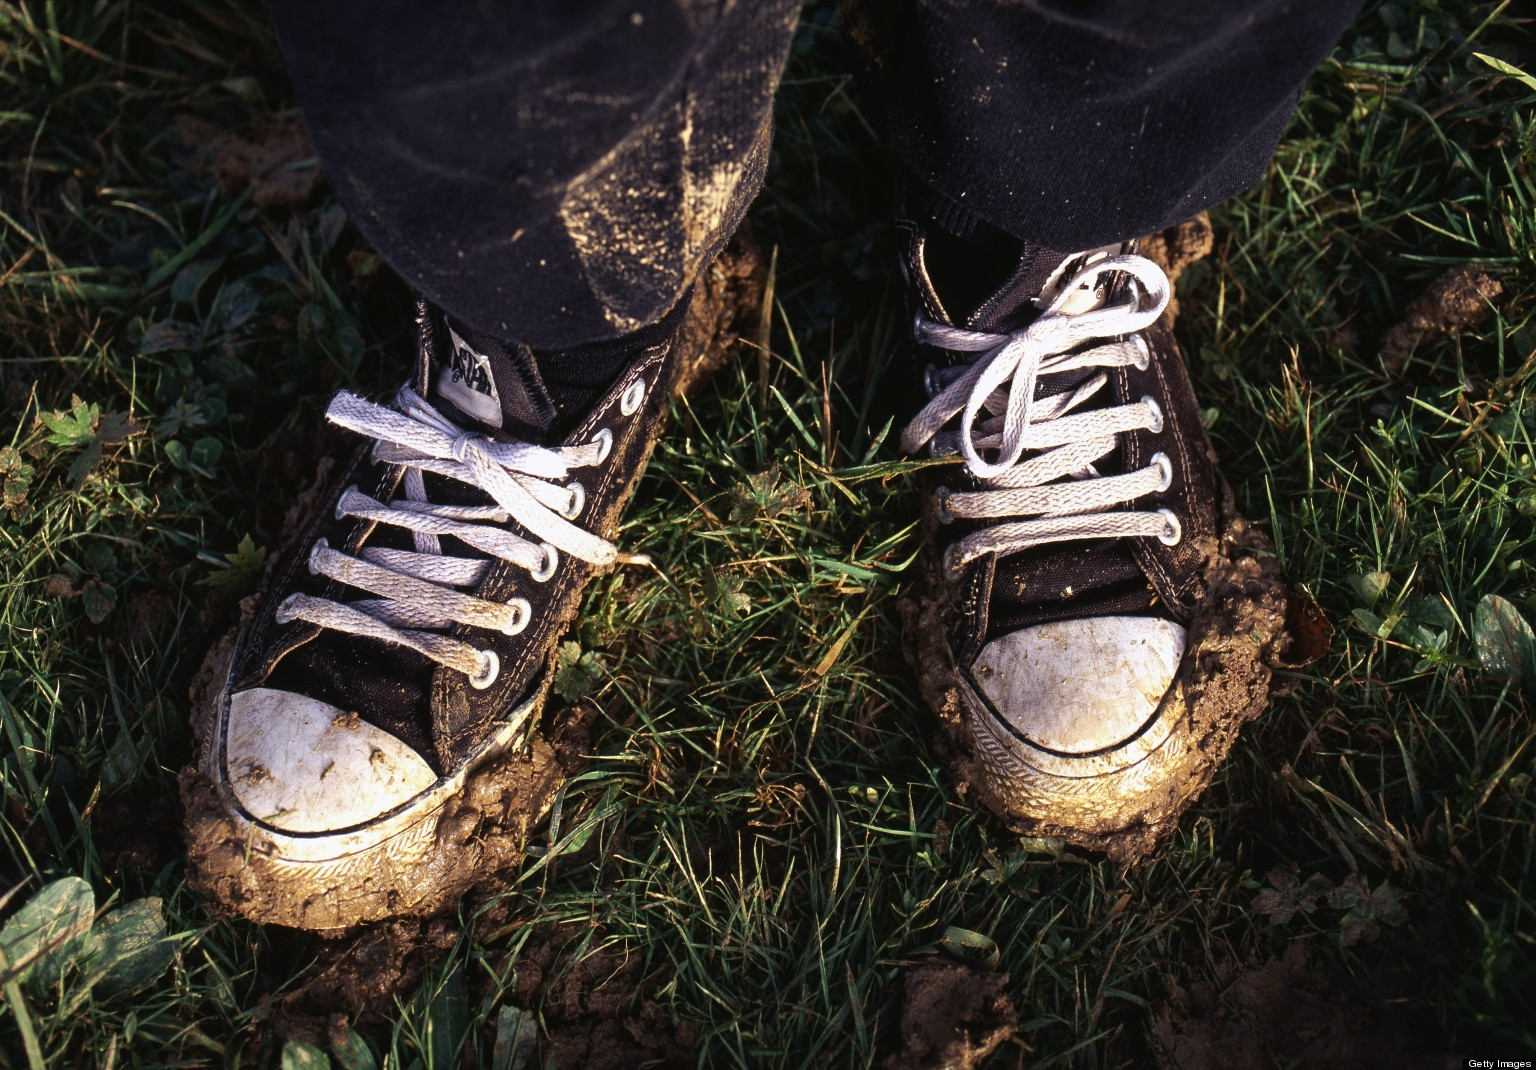 Mud : The Coming of Age of the Knight in Shining Armor